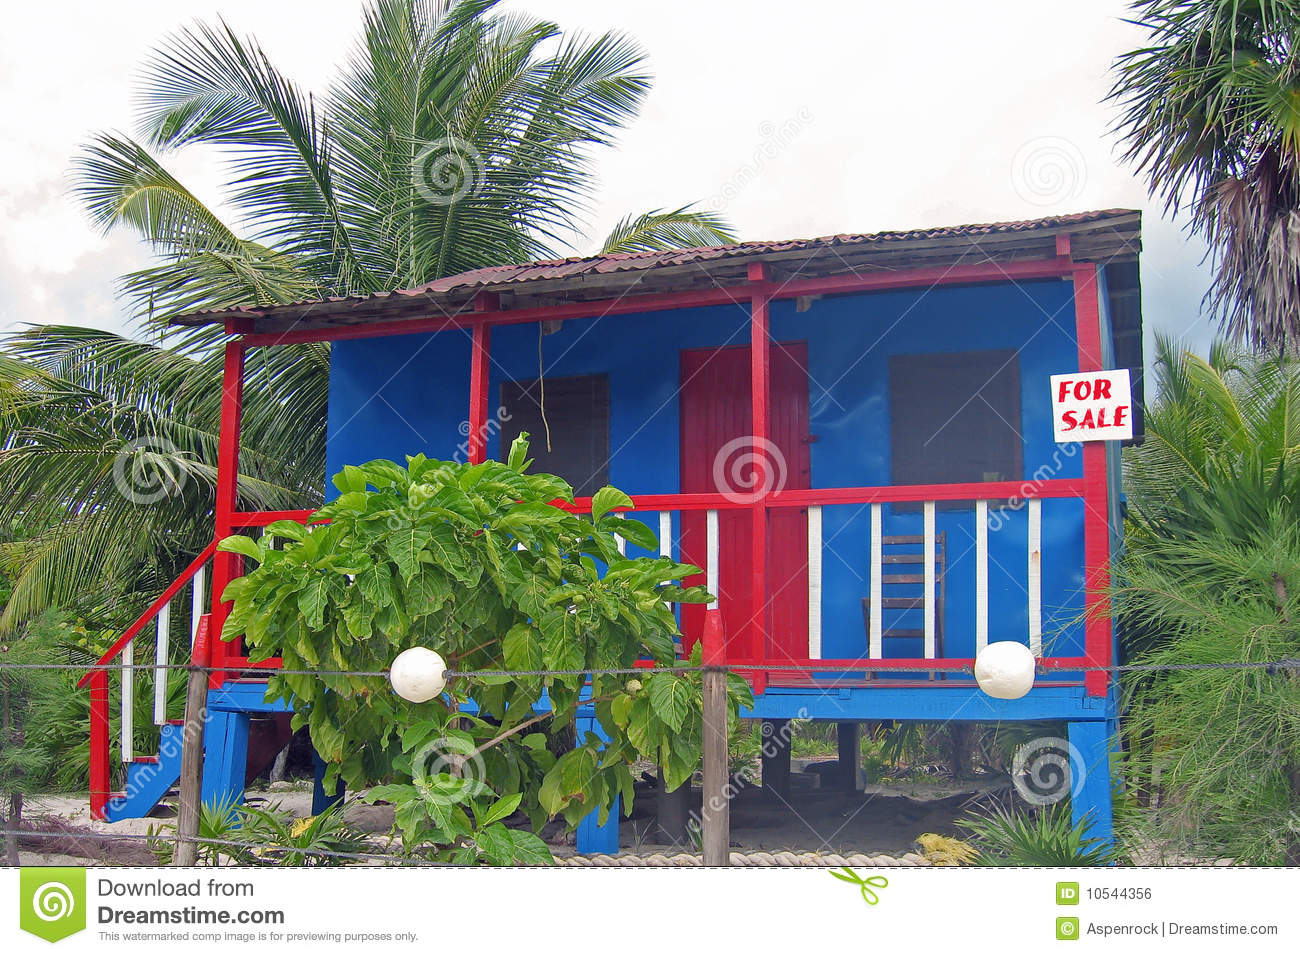 Royalty Free Stock Image Caribbean Style Shack Sale Image10544356 on Beach House On Stilts Plans